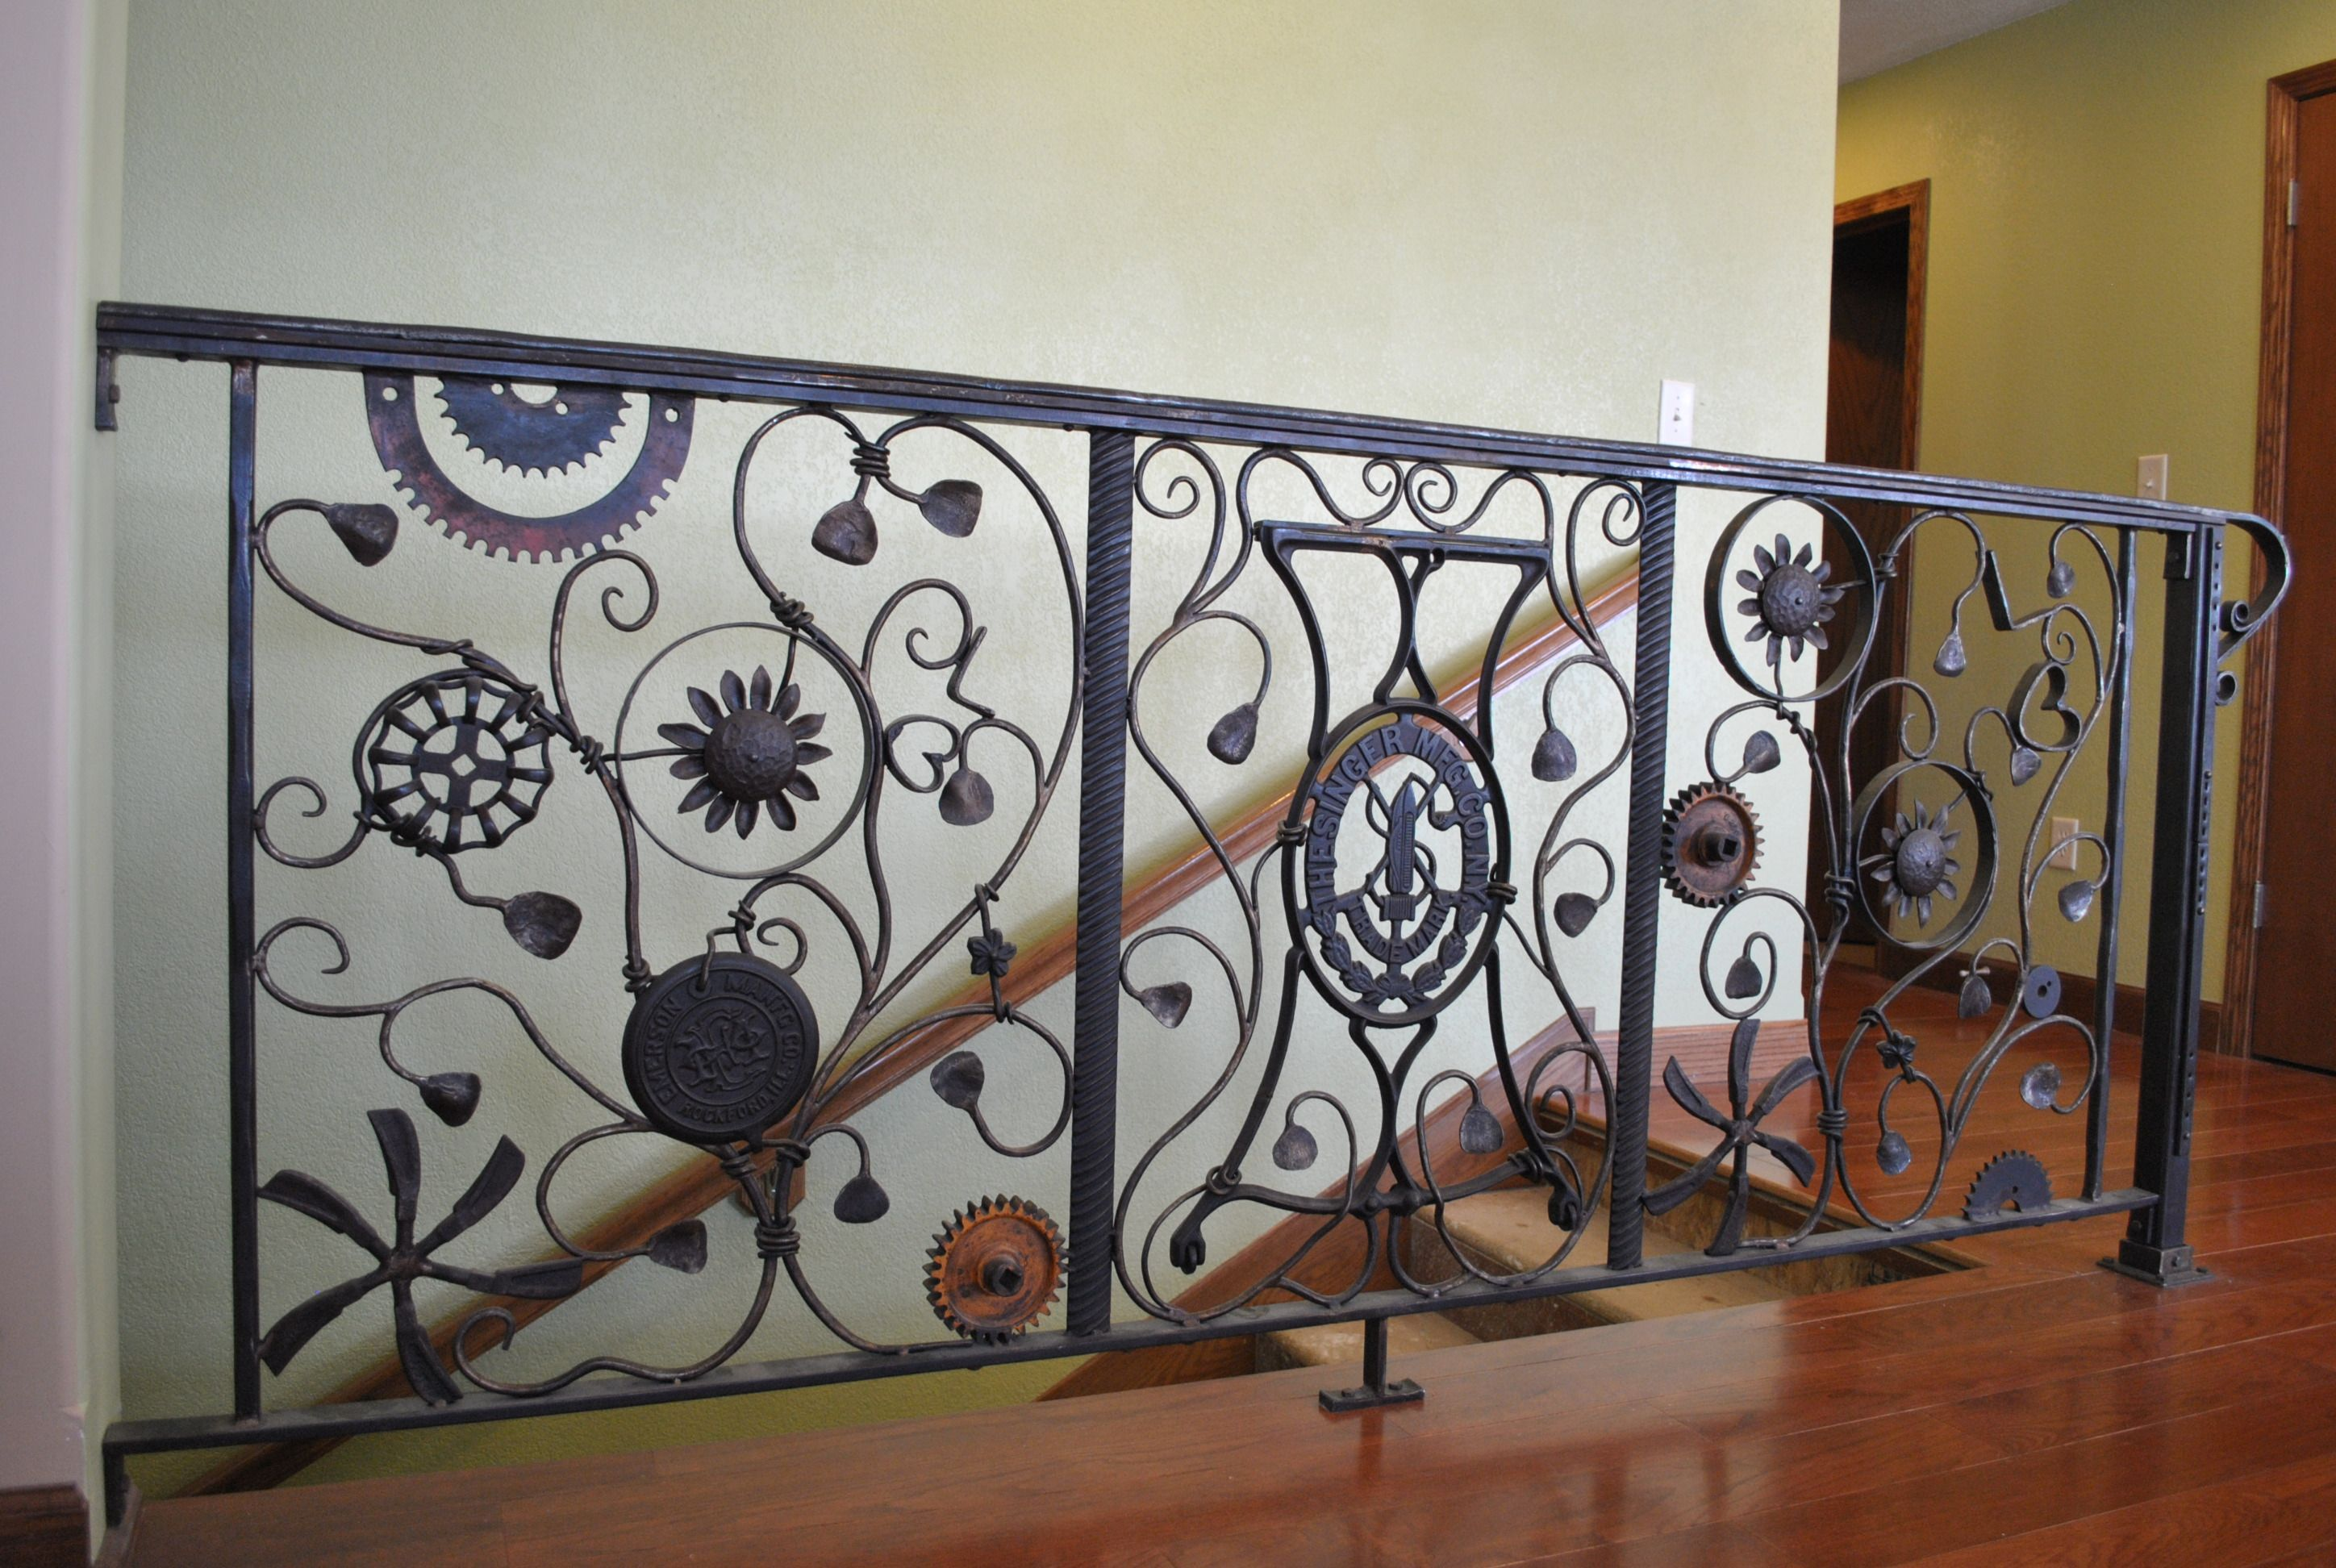 Staircase Railing Made From Mild Steel And Found Farm Implements